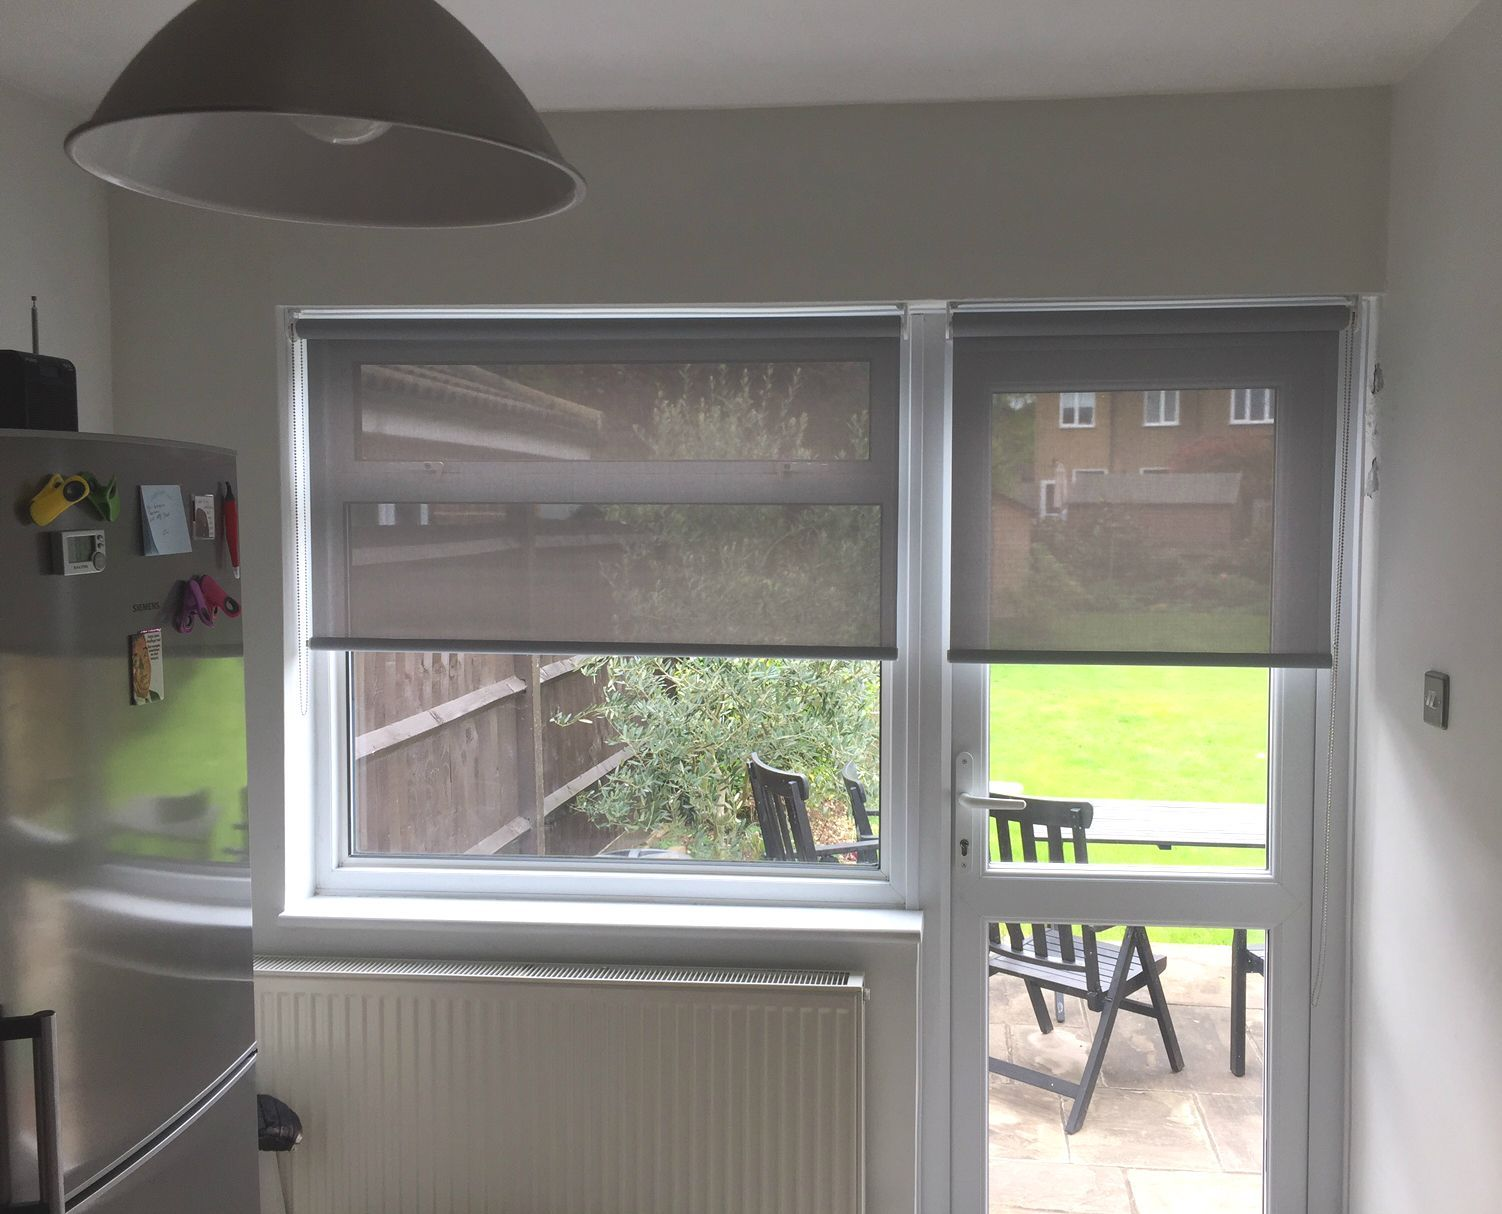 Sunscreen Roller Blinds On Door And Window In Kitchen Surrey Made To Measure Linenblinds Blinds For Bifold Doors Custom Window Blinds Blinds For Windows